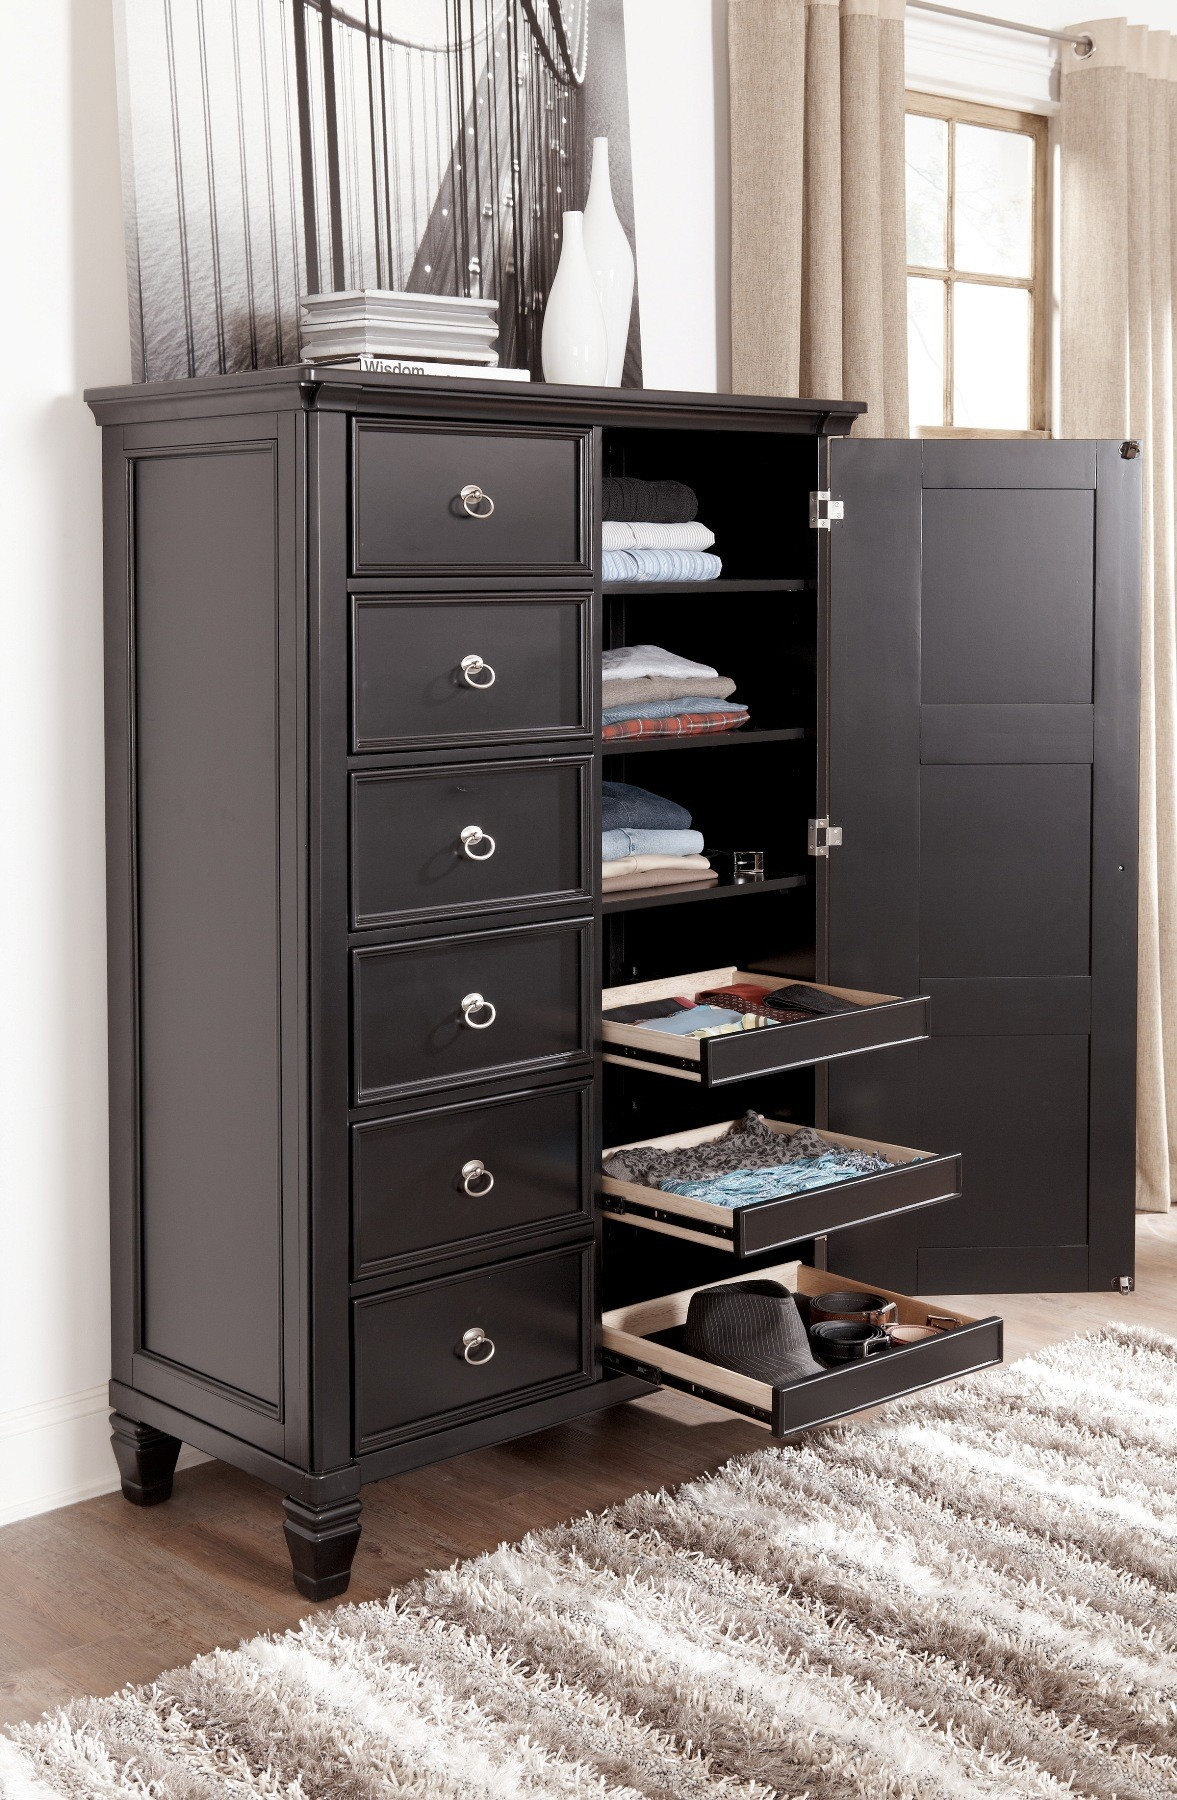 Greensburg Door Chest From Ashley B671 48 Coleman Furniture